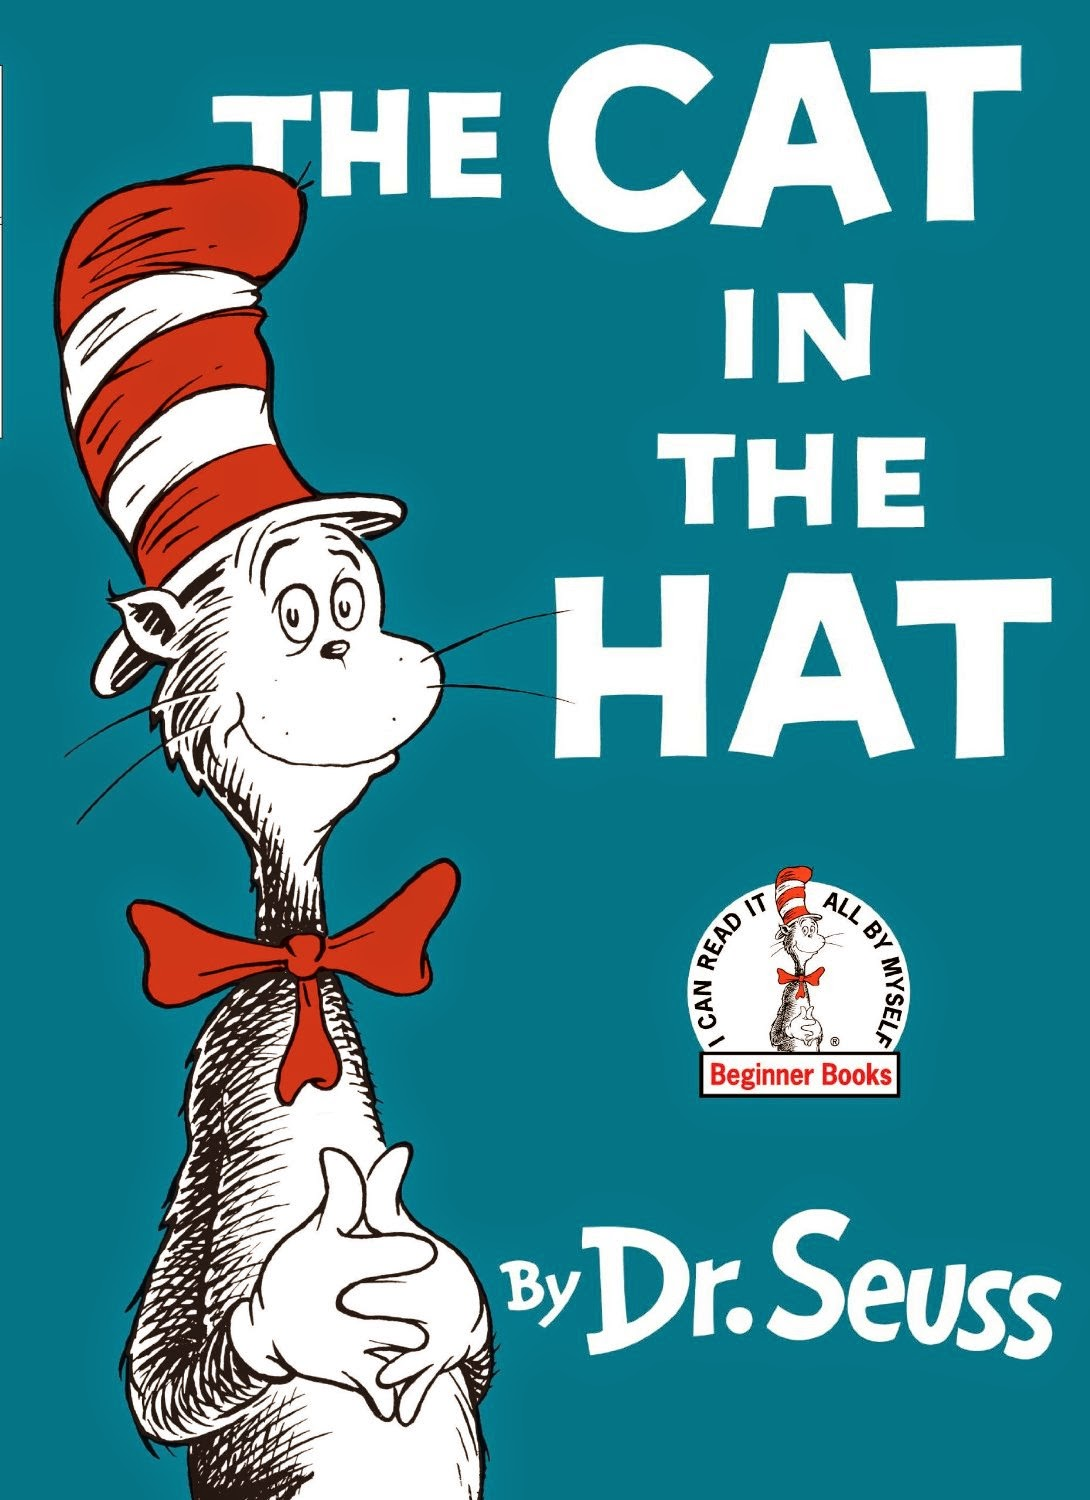 The Cat in the Hat by Dr. Seuss, part of children's book review list about cats